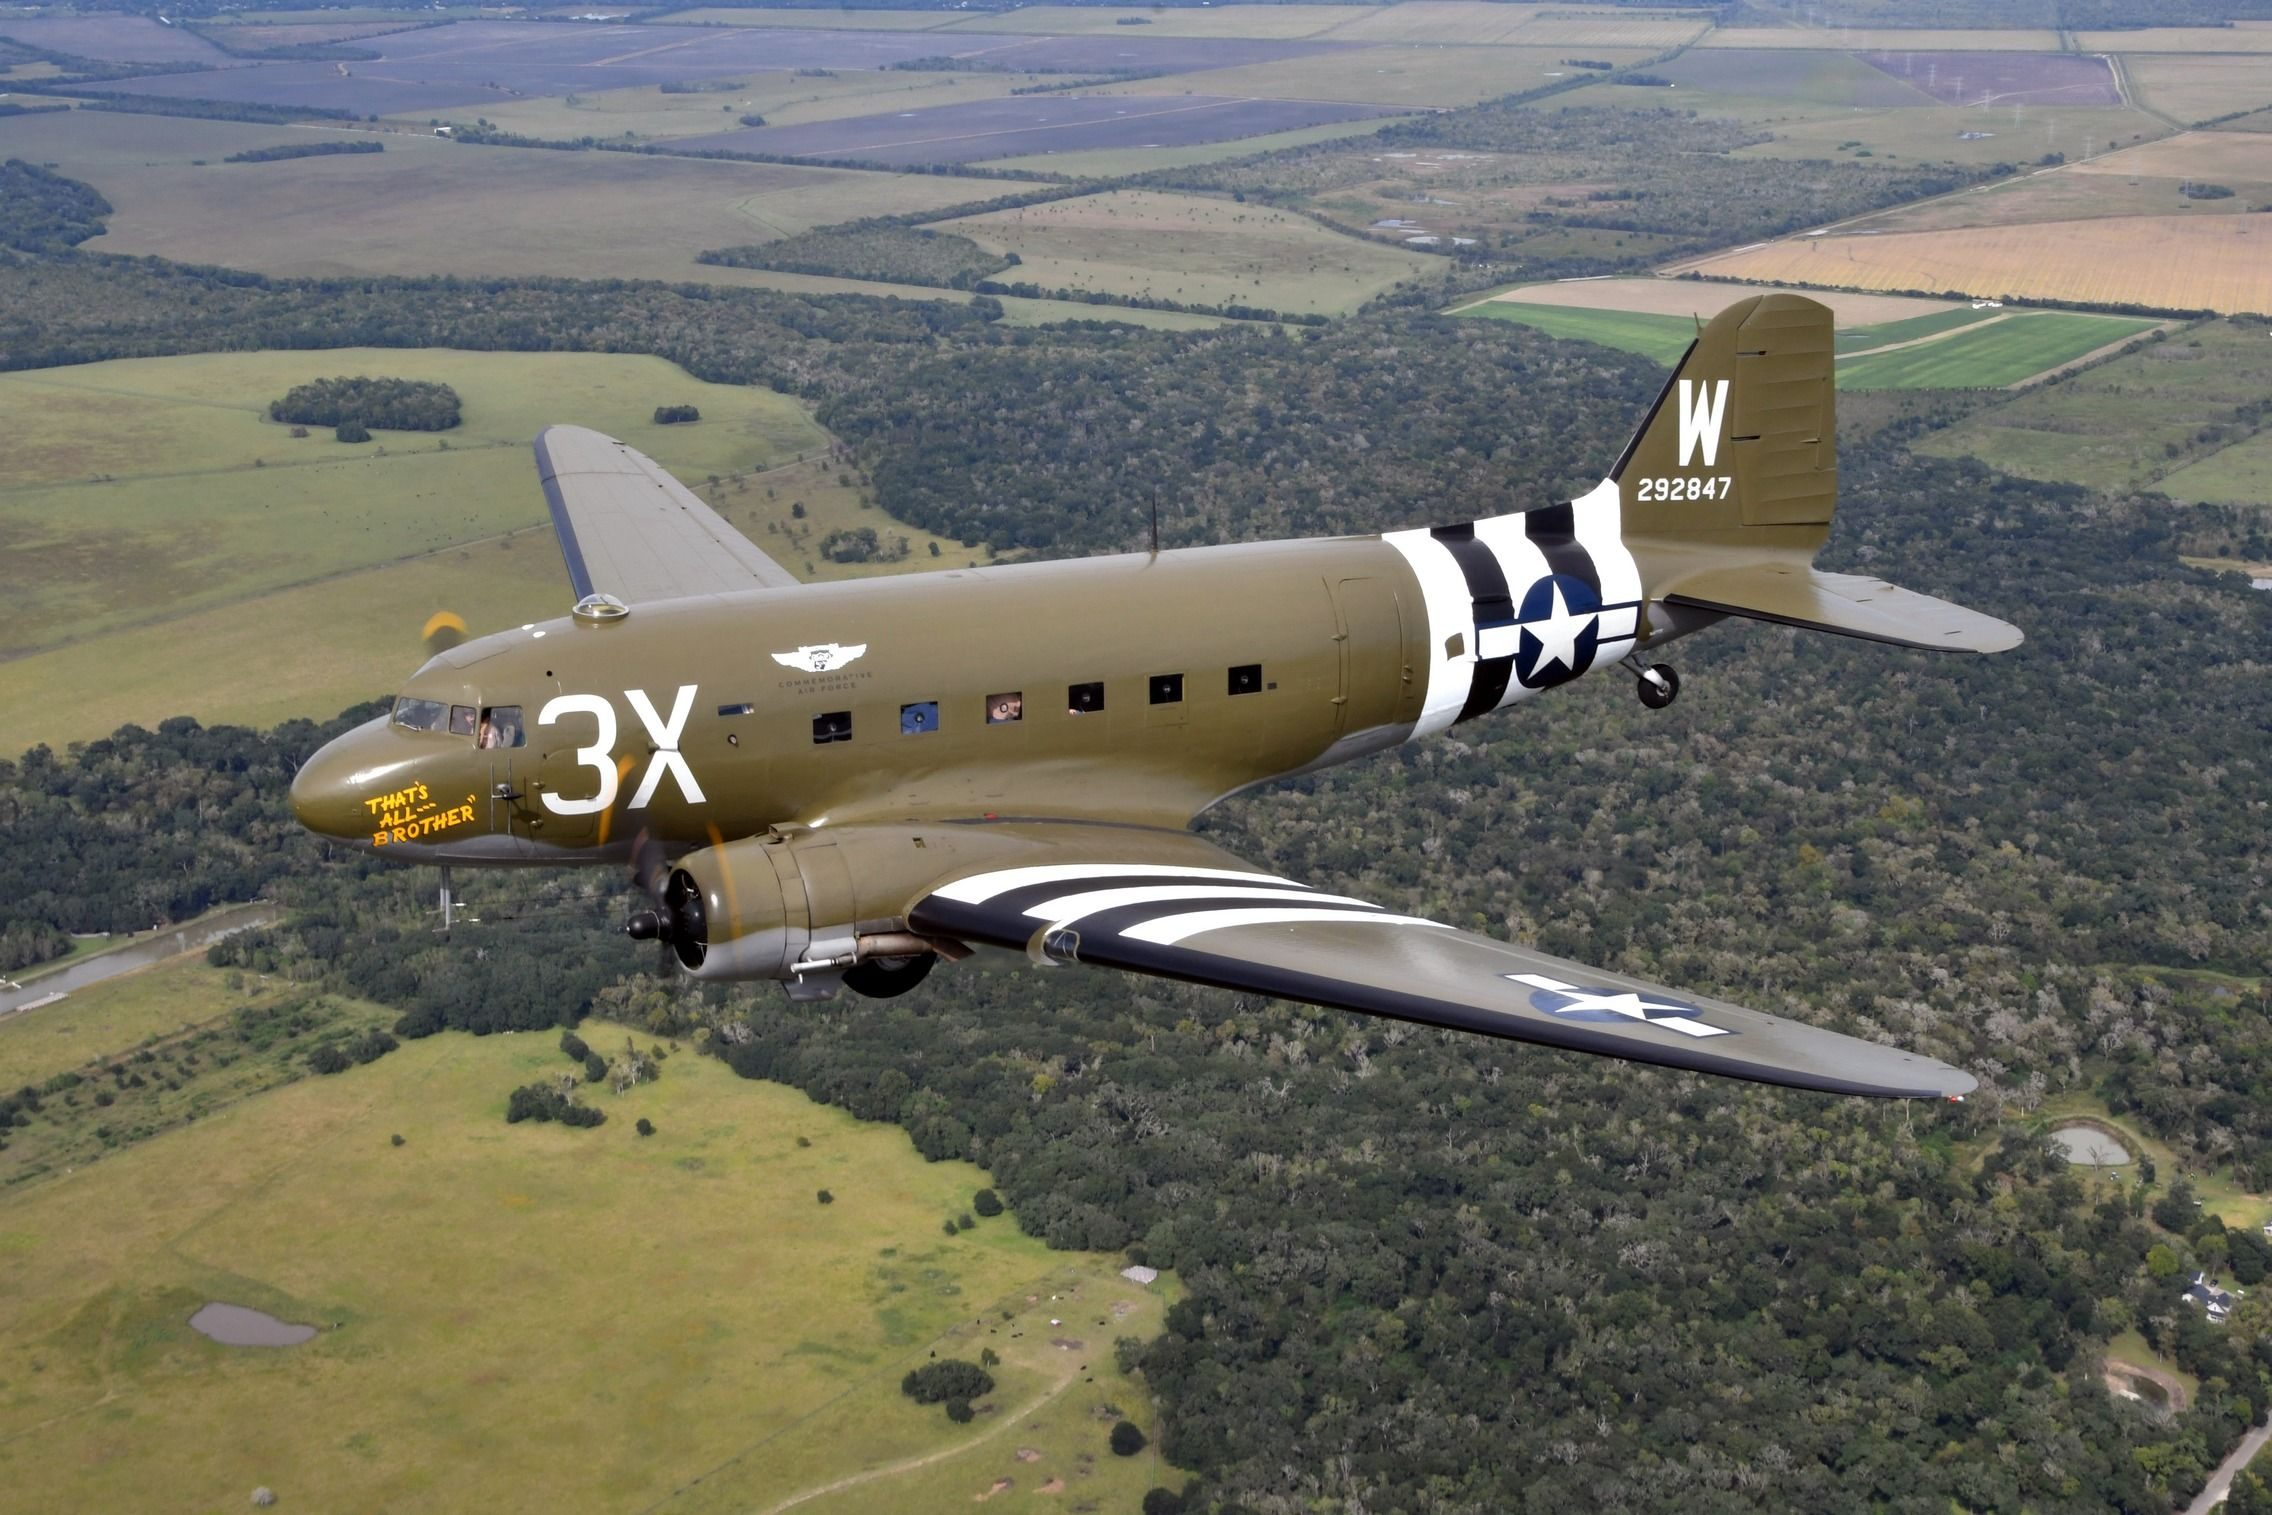 World War II planes coming to DC area for flyover and visit